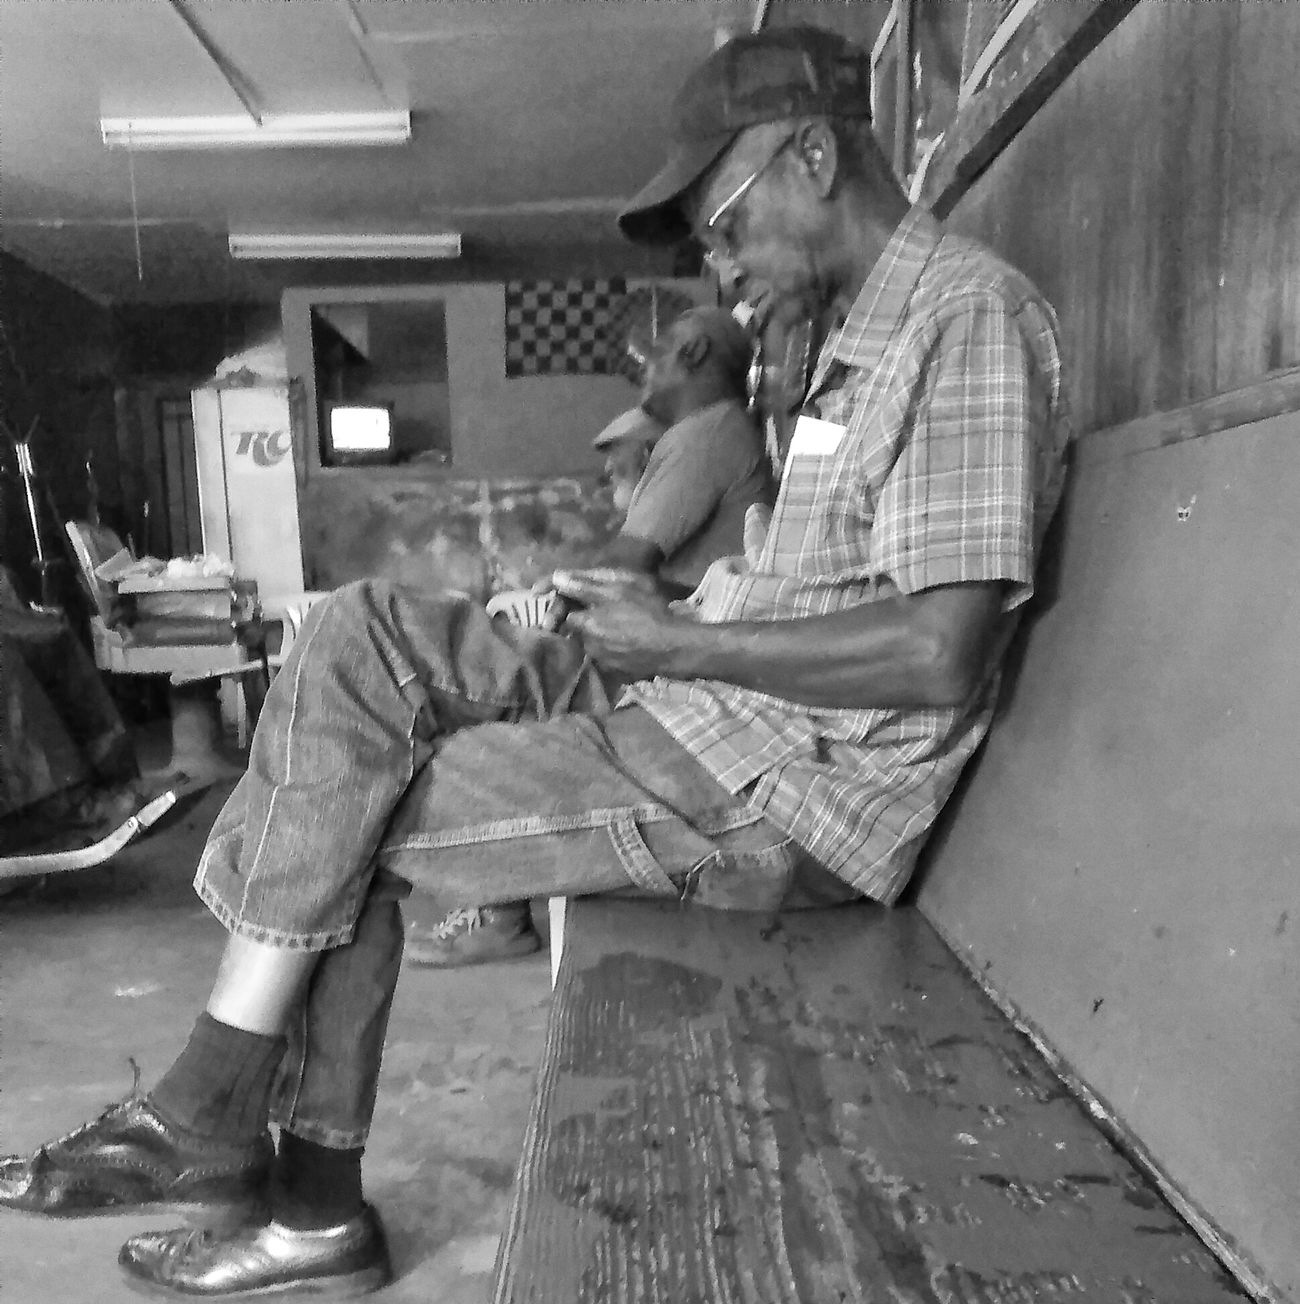 Waiting at the Barbershop! Hanging Out Taking Photos Enjoying Life Street Photography Street Portrait Shoottolive Candid Photography Streetphoto_bw Barbershop Black And White Photography Mobilephotography Androidography Man Lifephotography